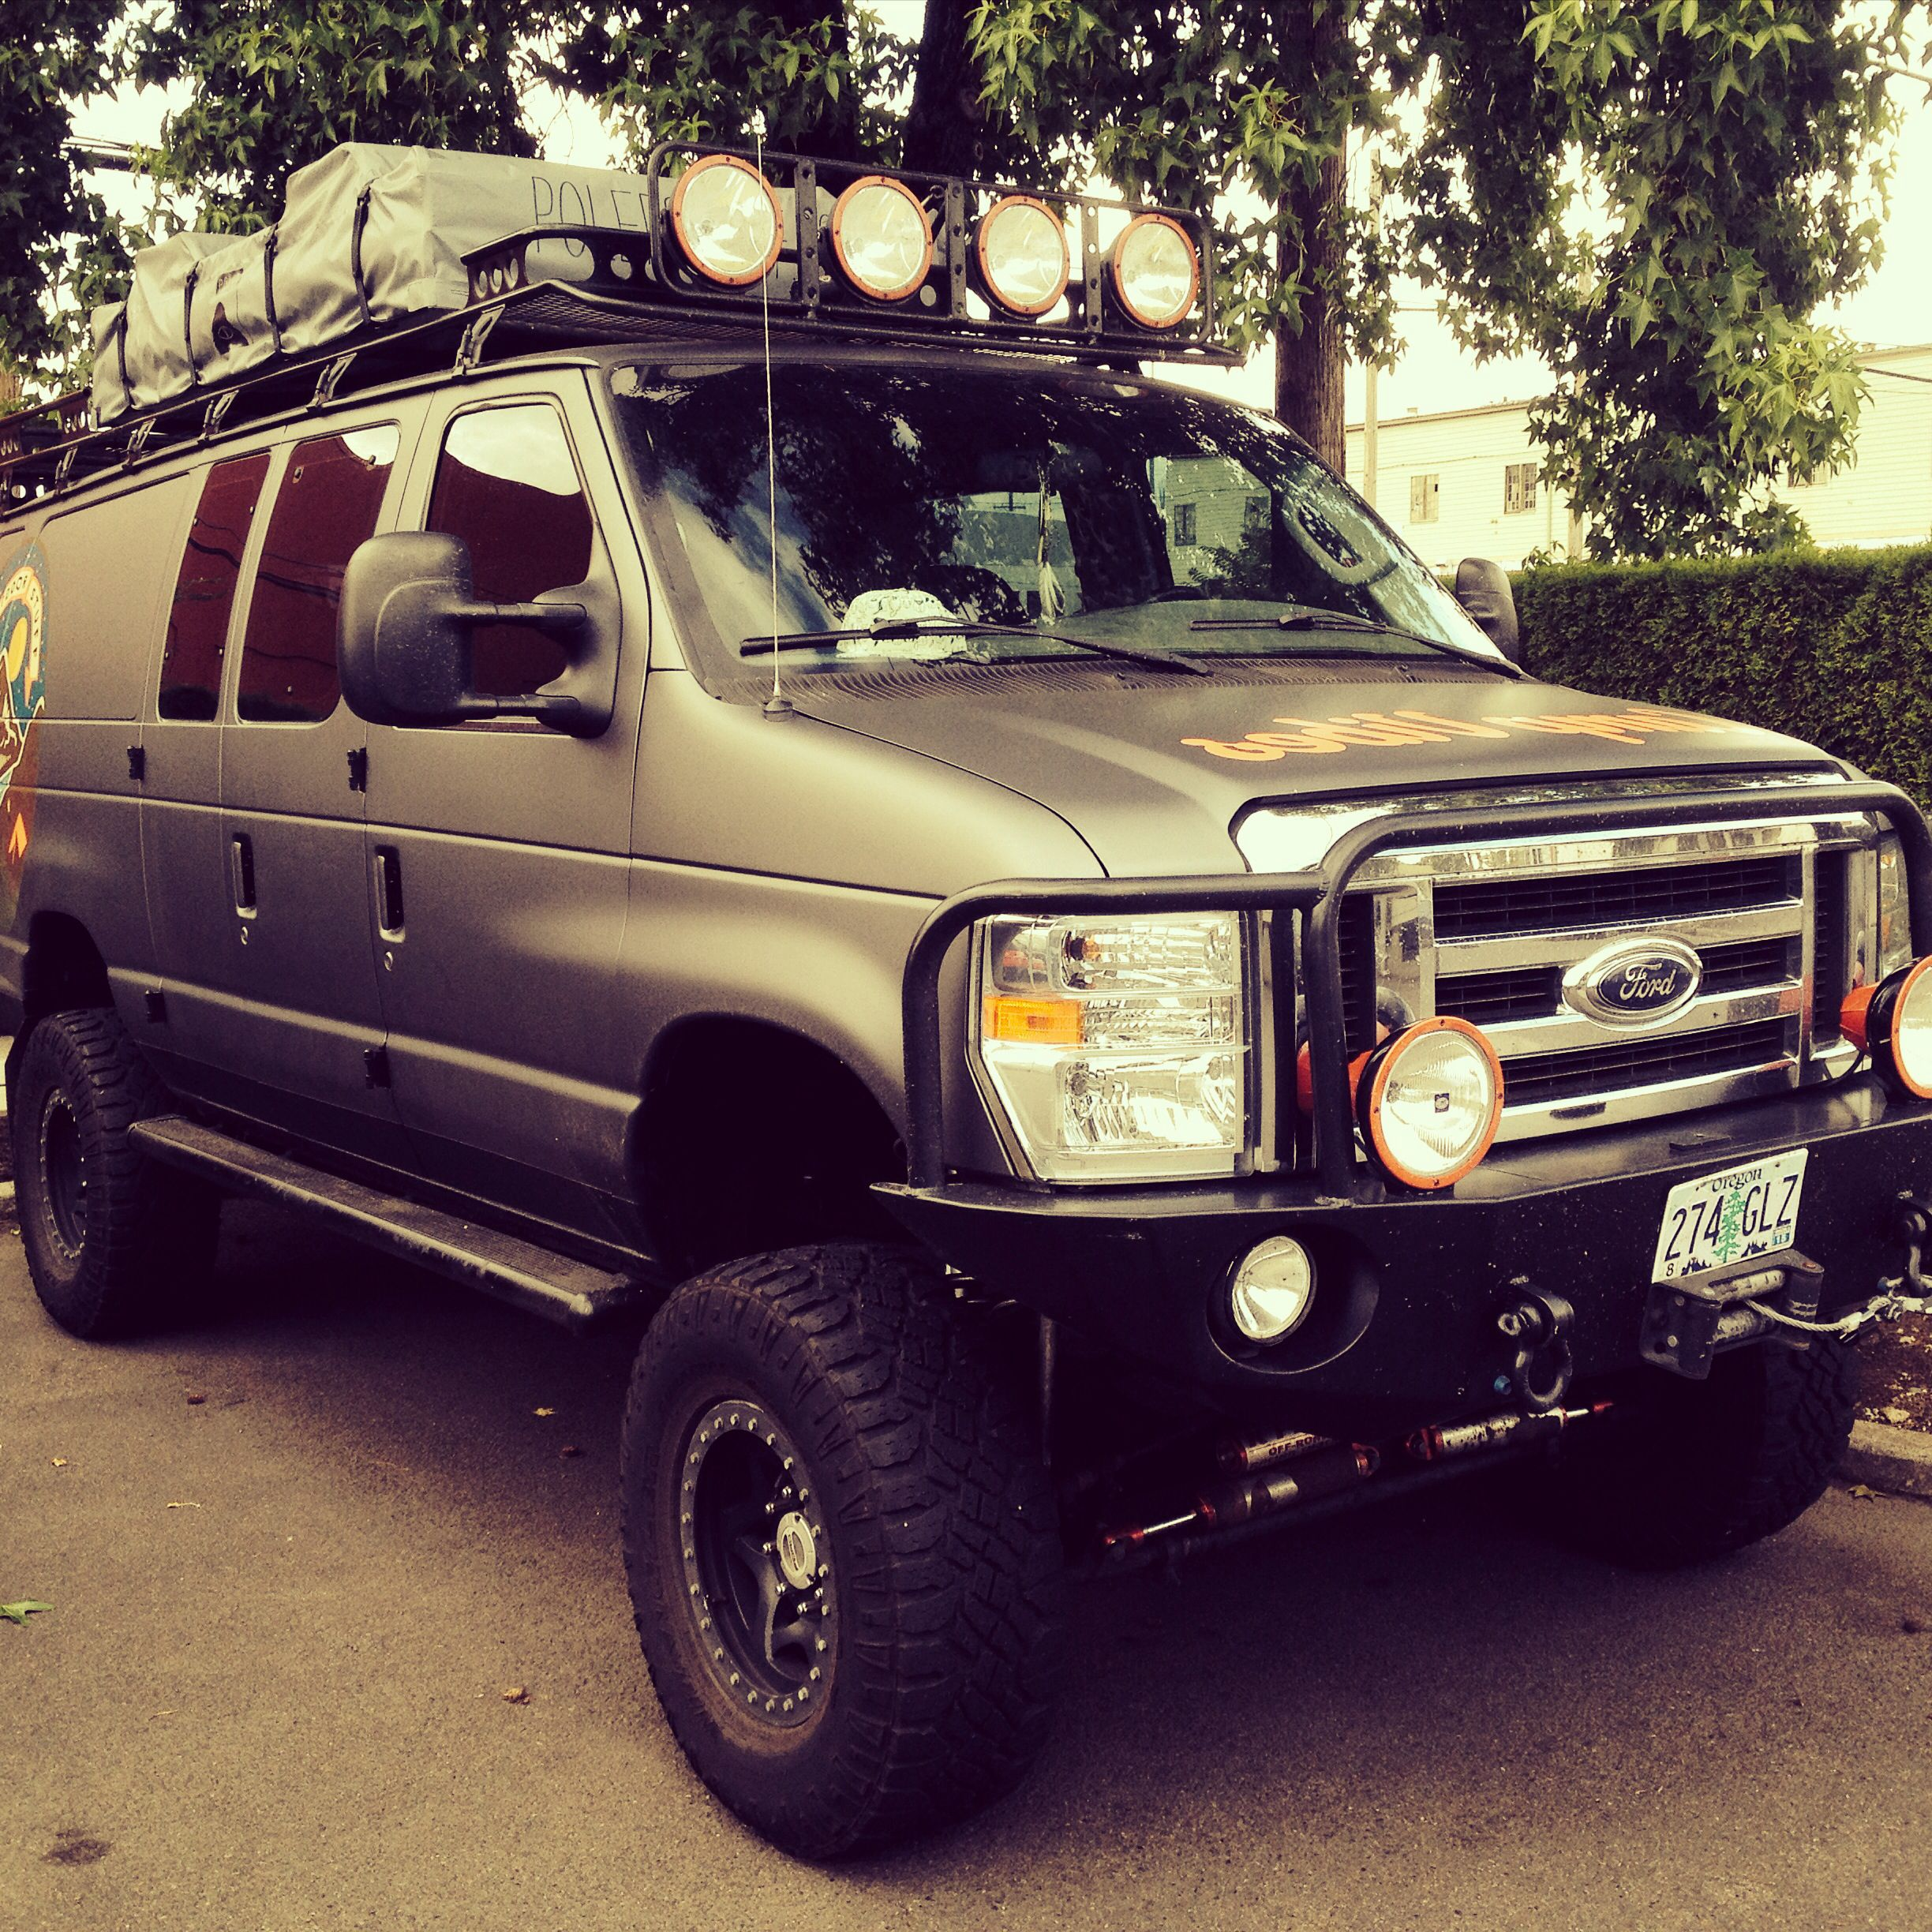 Ford e 350 eb van with aluminess gear all around aluminess roof - Sportsmobile With Aluminess Front Bumper And Roof Rack